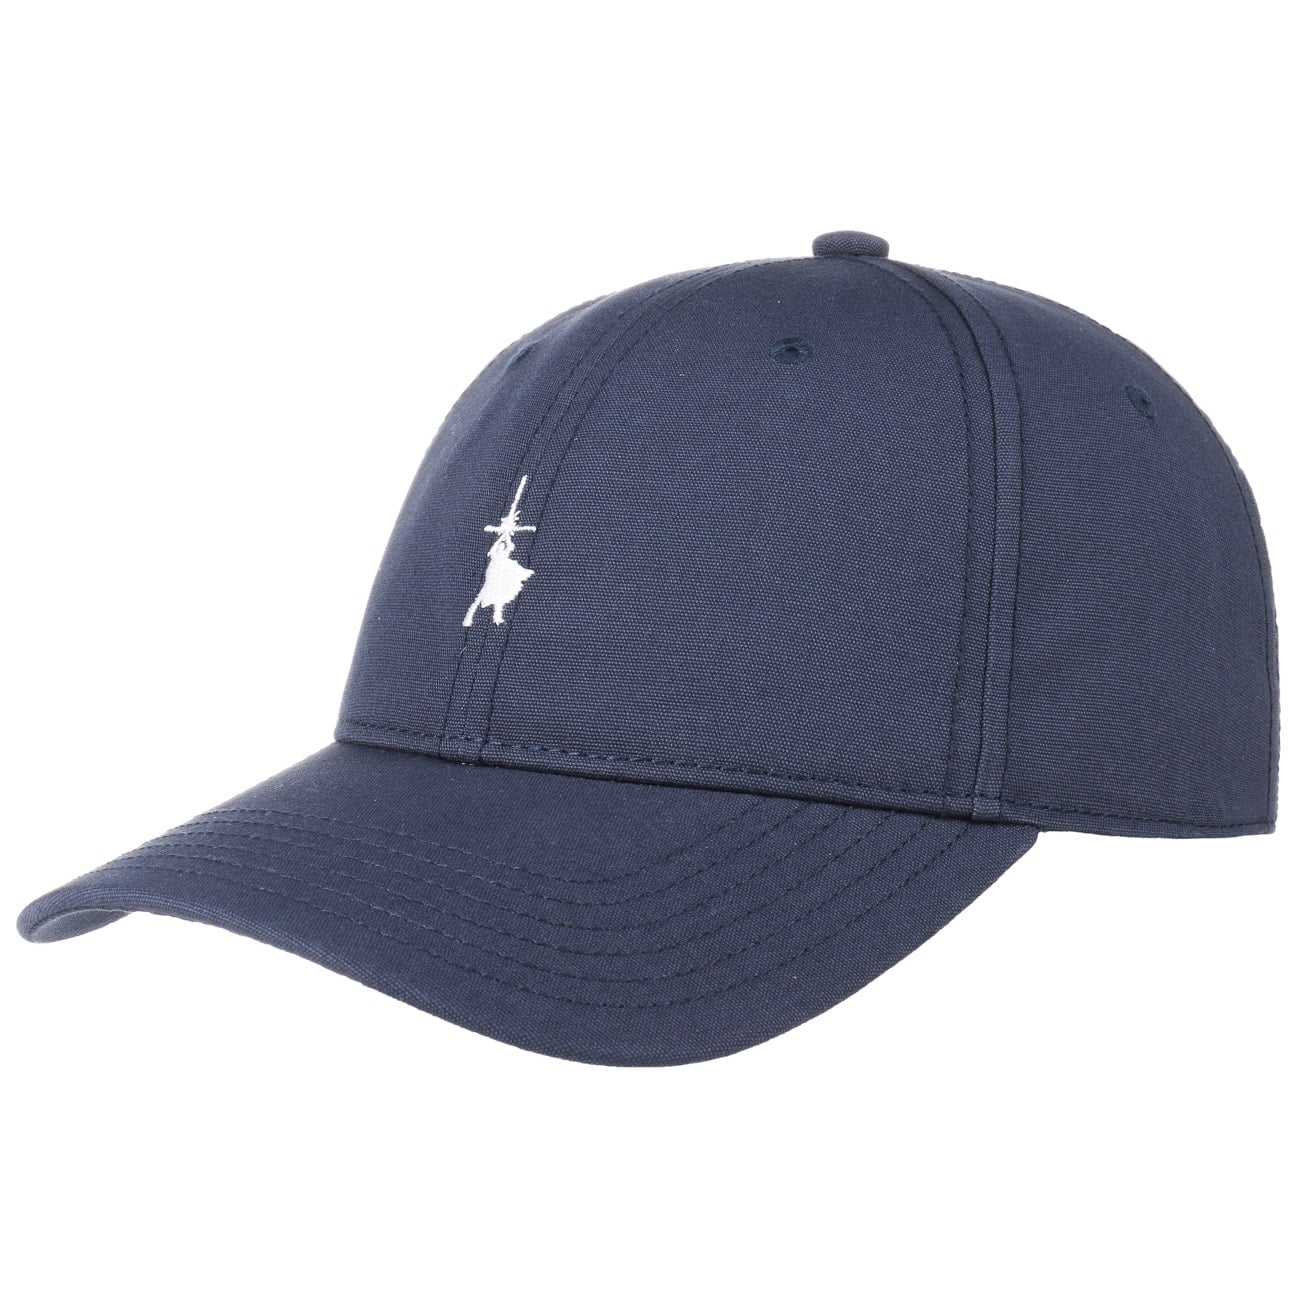 Gorra Luke Curved Brim by dedicated  base cap